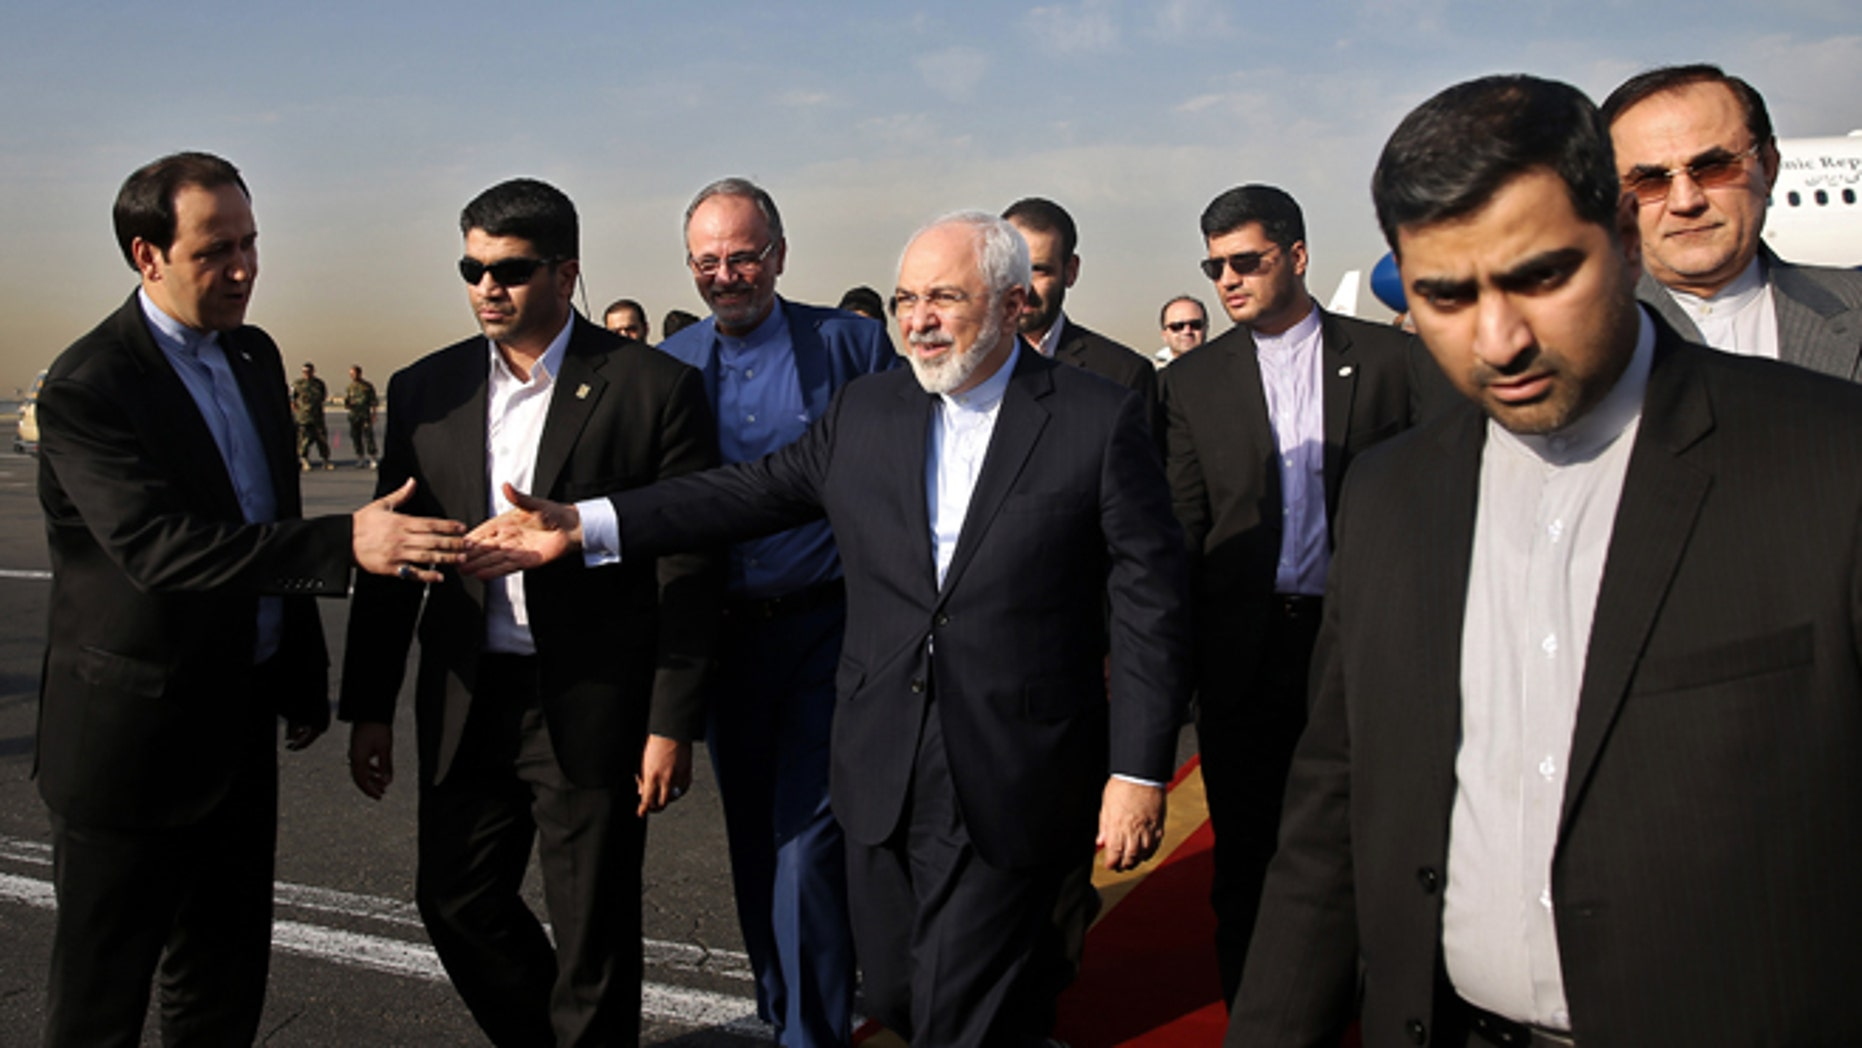 July 15, 2015: Iran's Foreign Minister Mohammad Javad Zarif, who is also Iran's top nuclear negotiator, center, shakes hands with an official upon arrival at the Mehrabad airport in Tehran, Iran. (AP Photo/Ebrahim Noroozi)